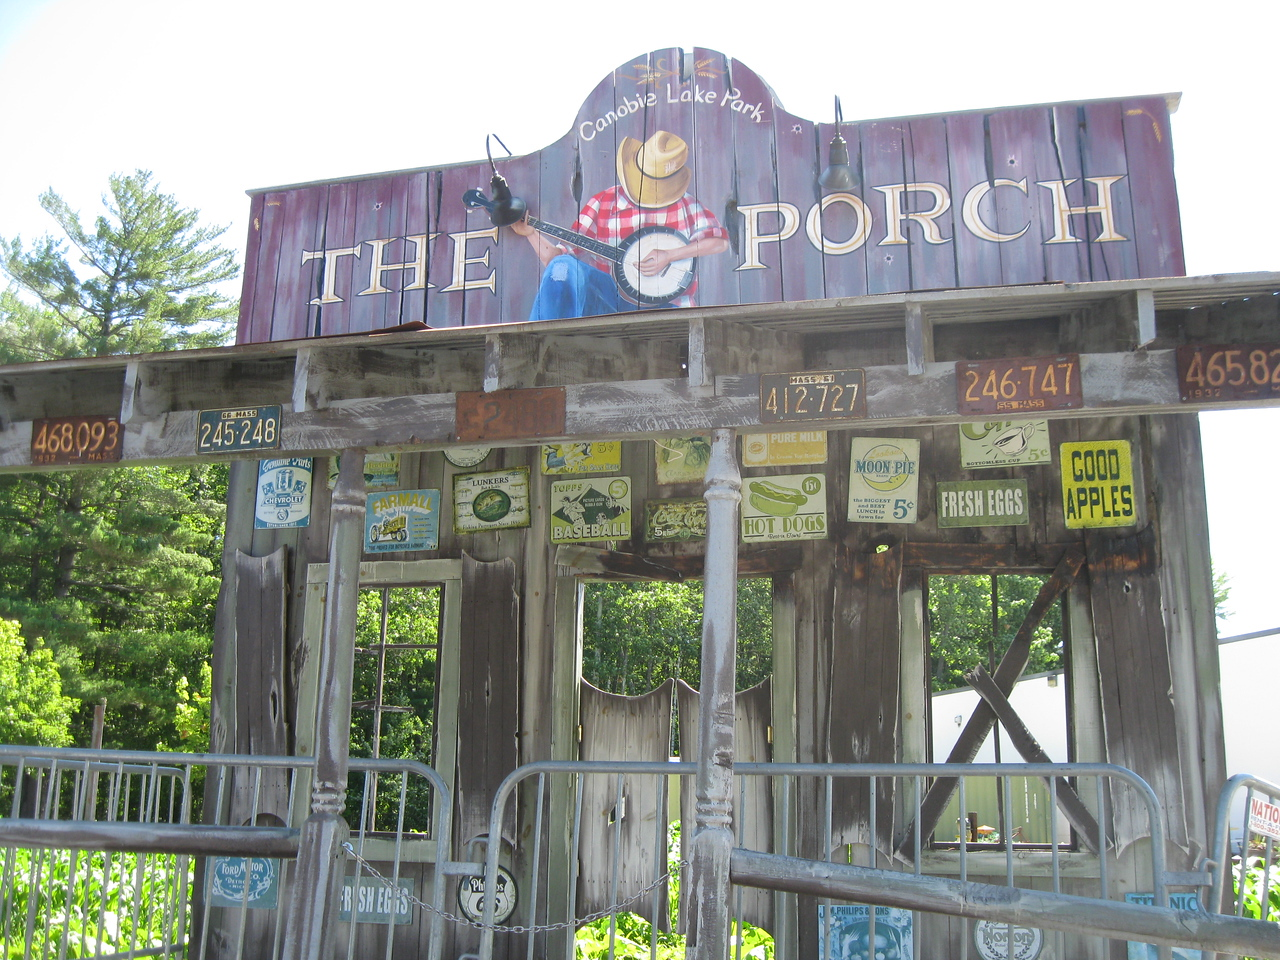 The Porch concert stage.